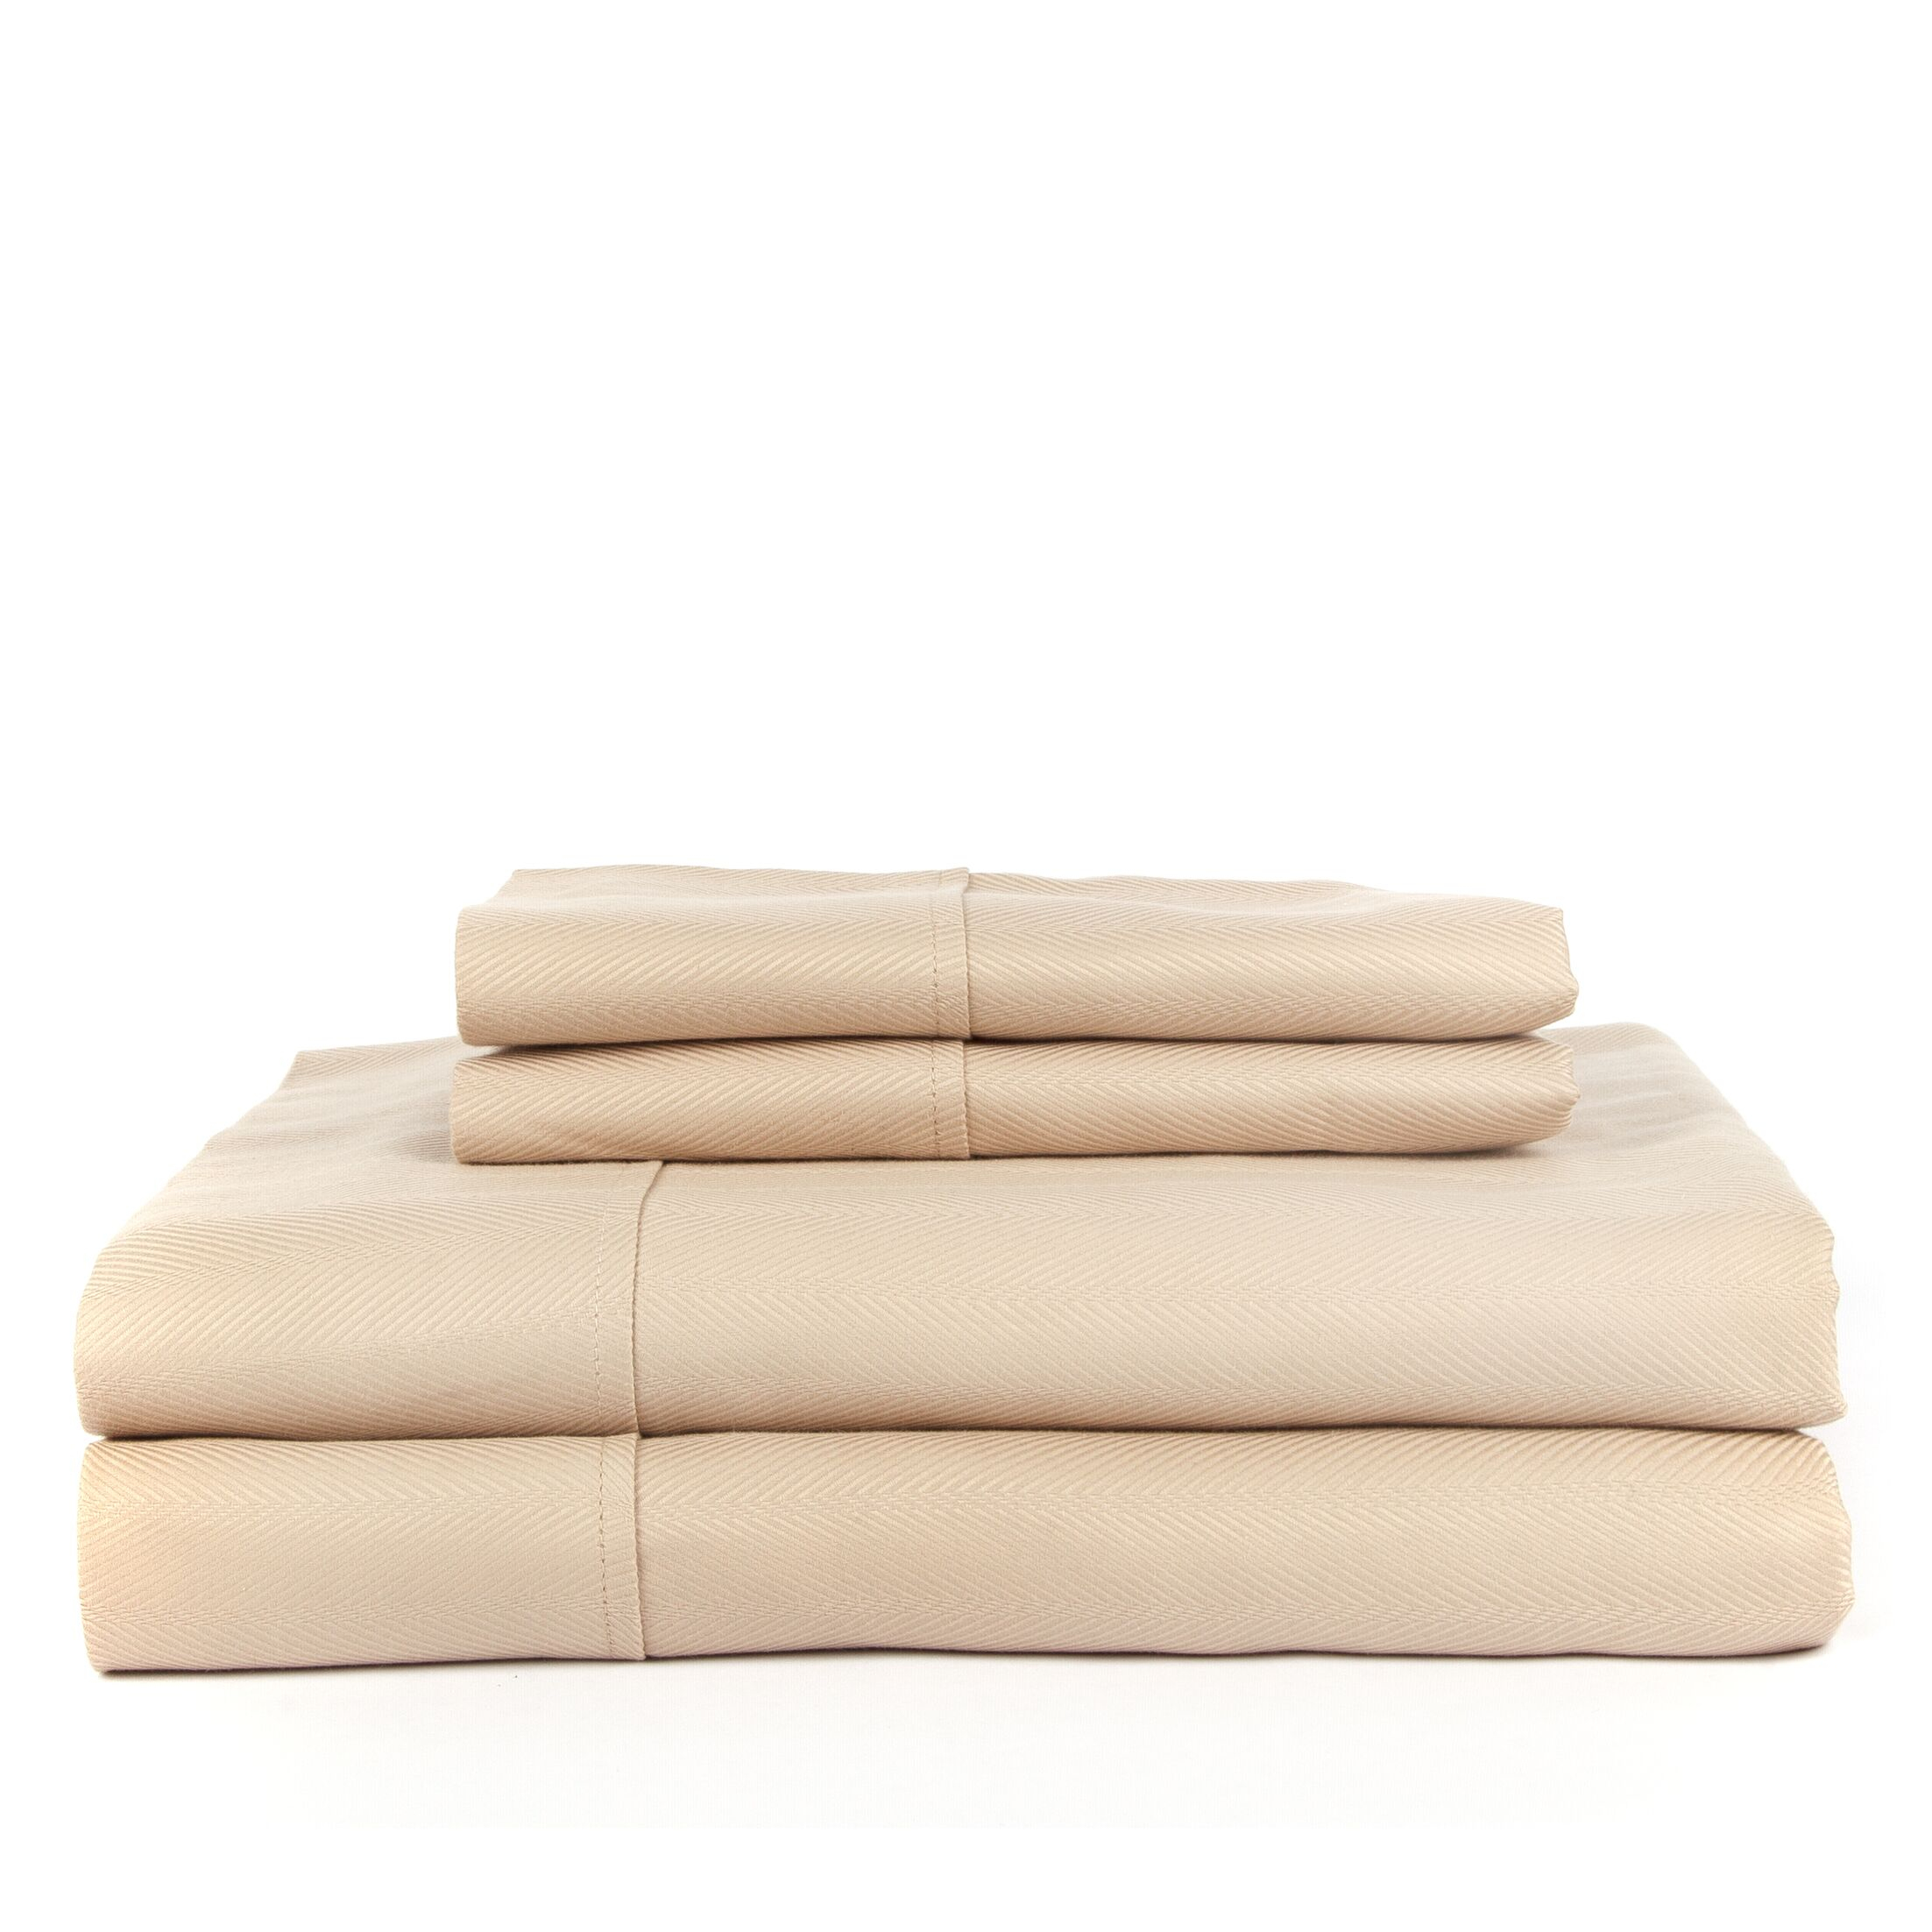 Devonshire of Nottingham 700 Thread Count Egyptian Quality Cotton Sheet Set Color: Taupe, Size: King